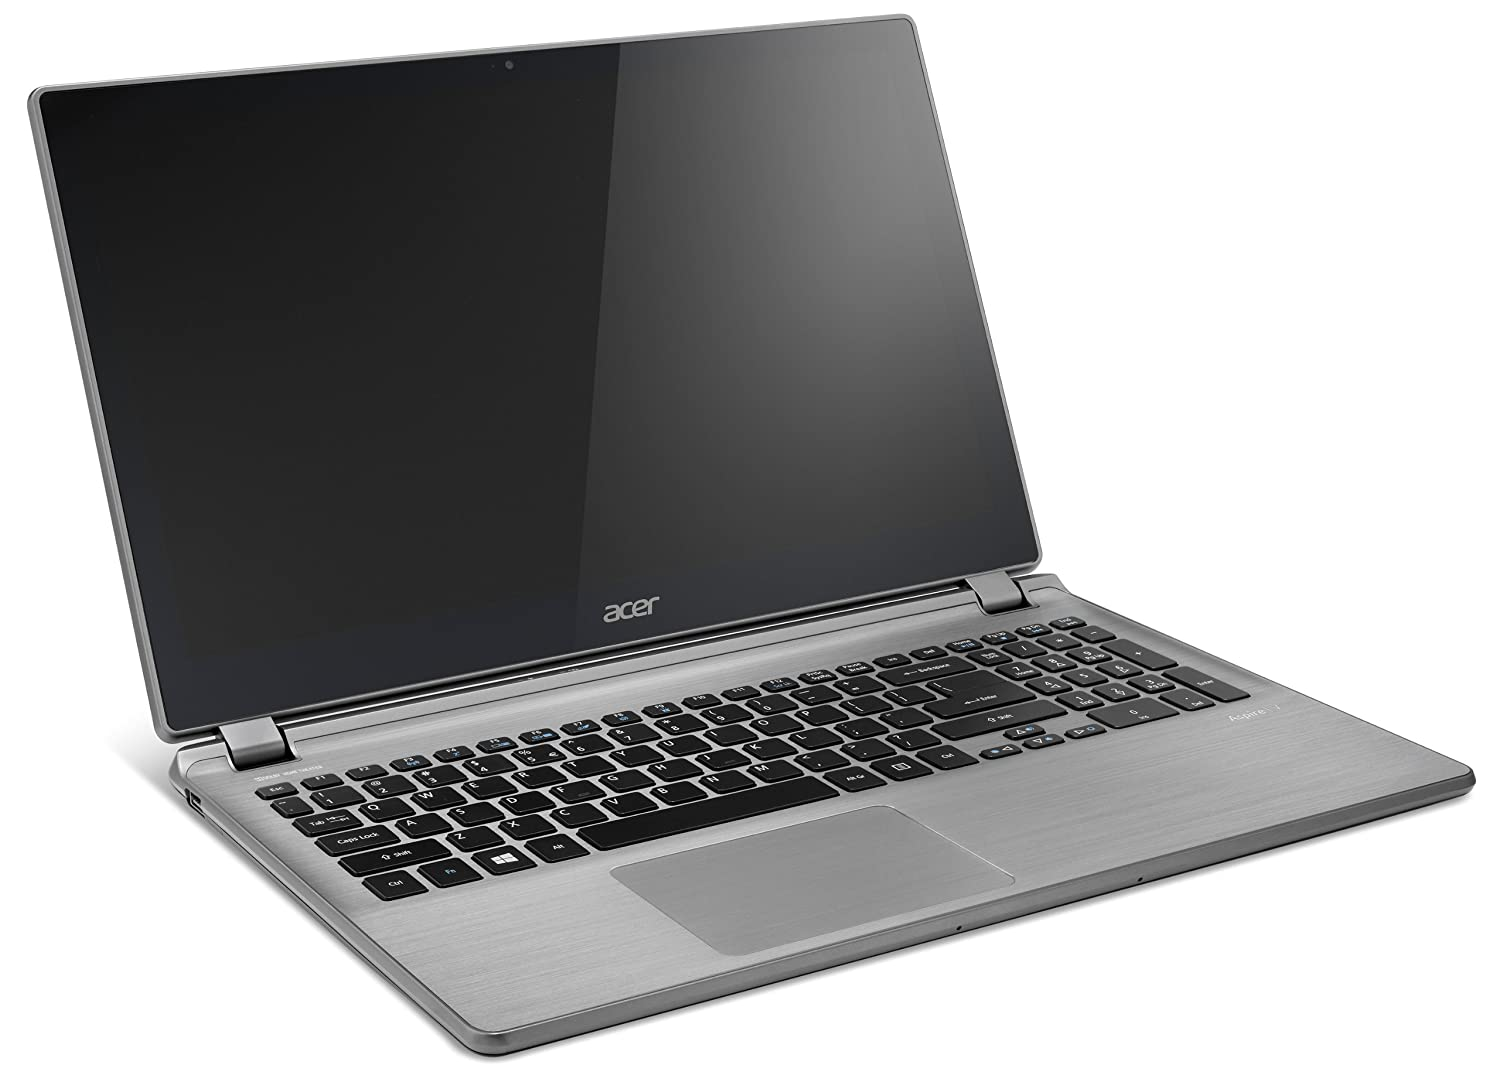 ACER ASPIRE V5-561P SYNAPTICS TOUCHPAD DRIVER FOR WINDOWS 7